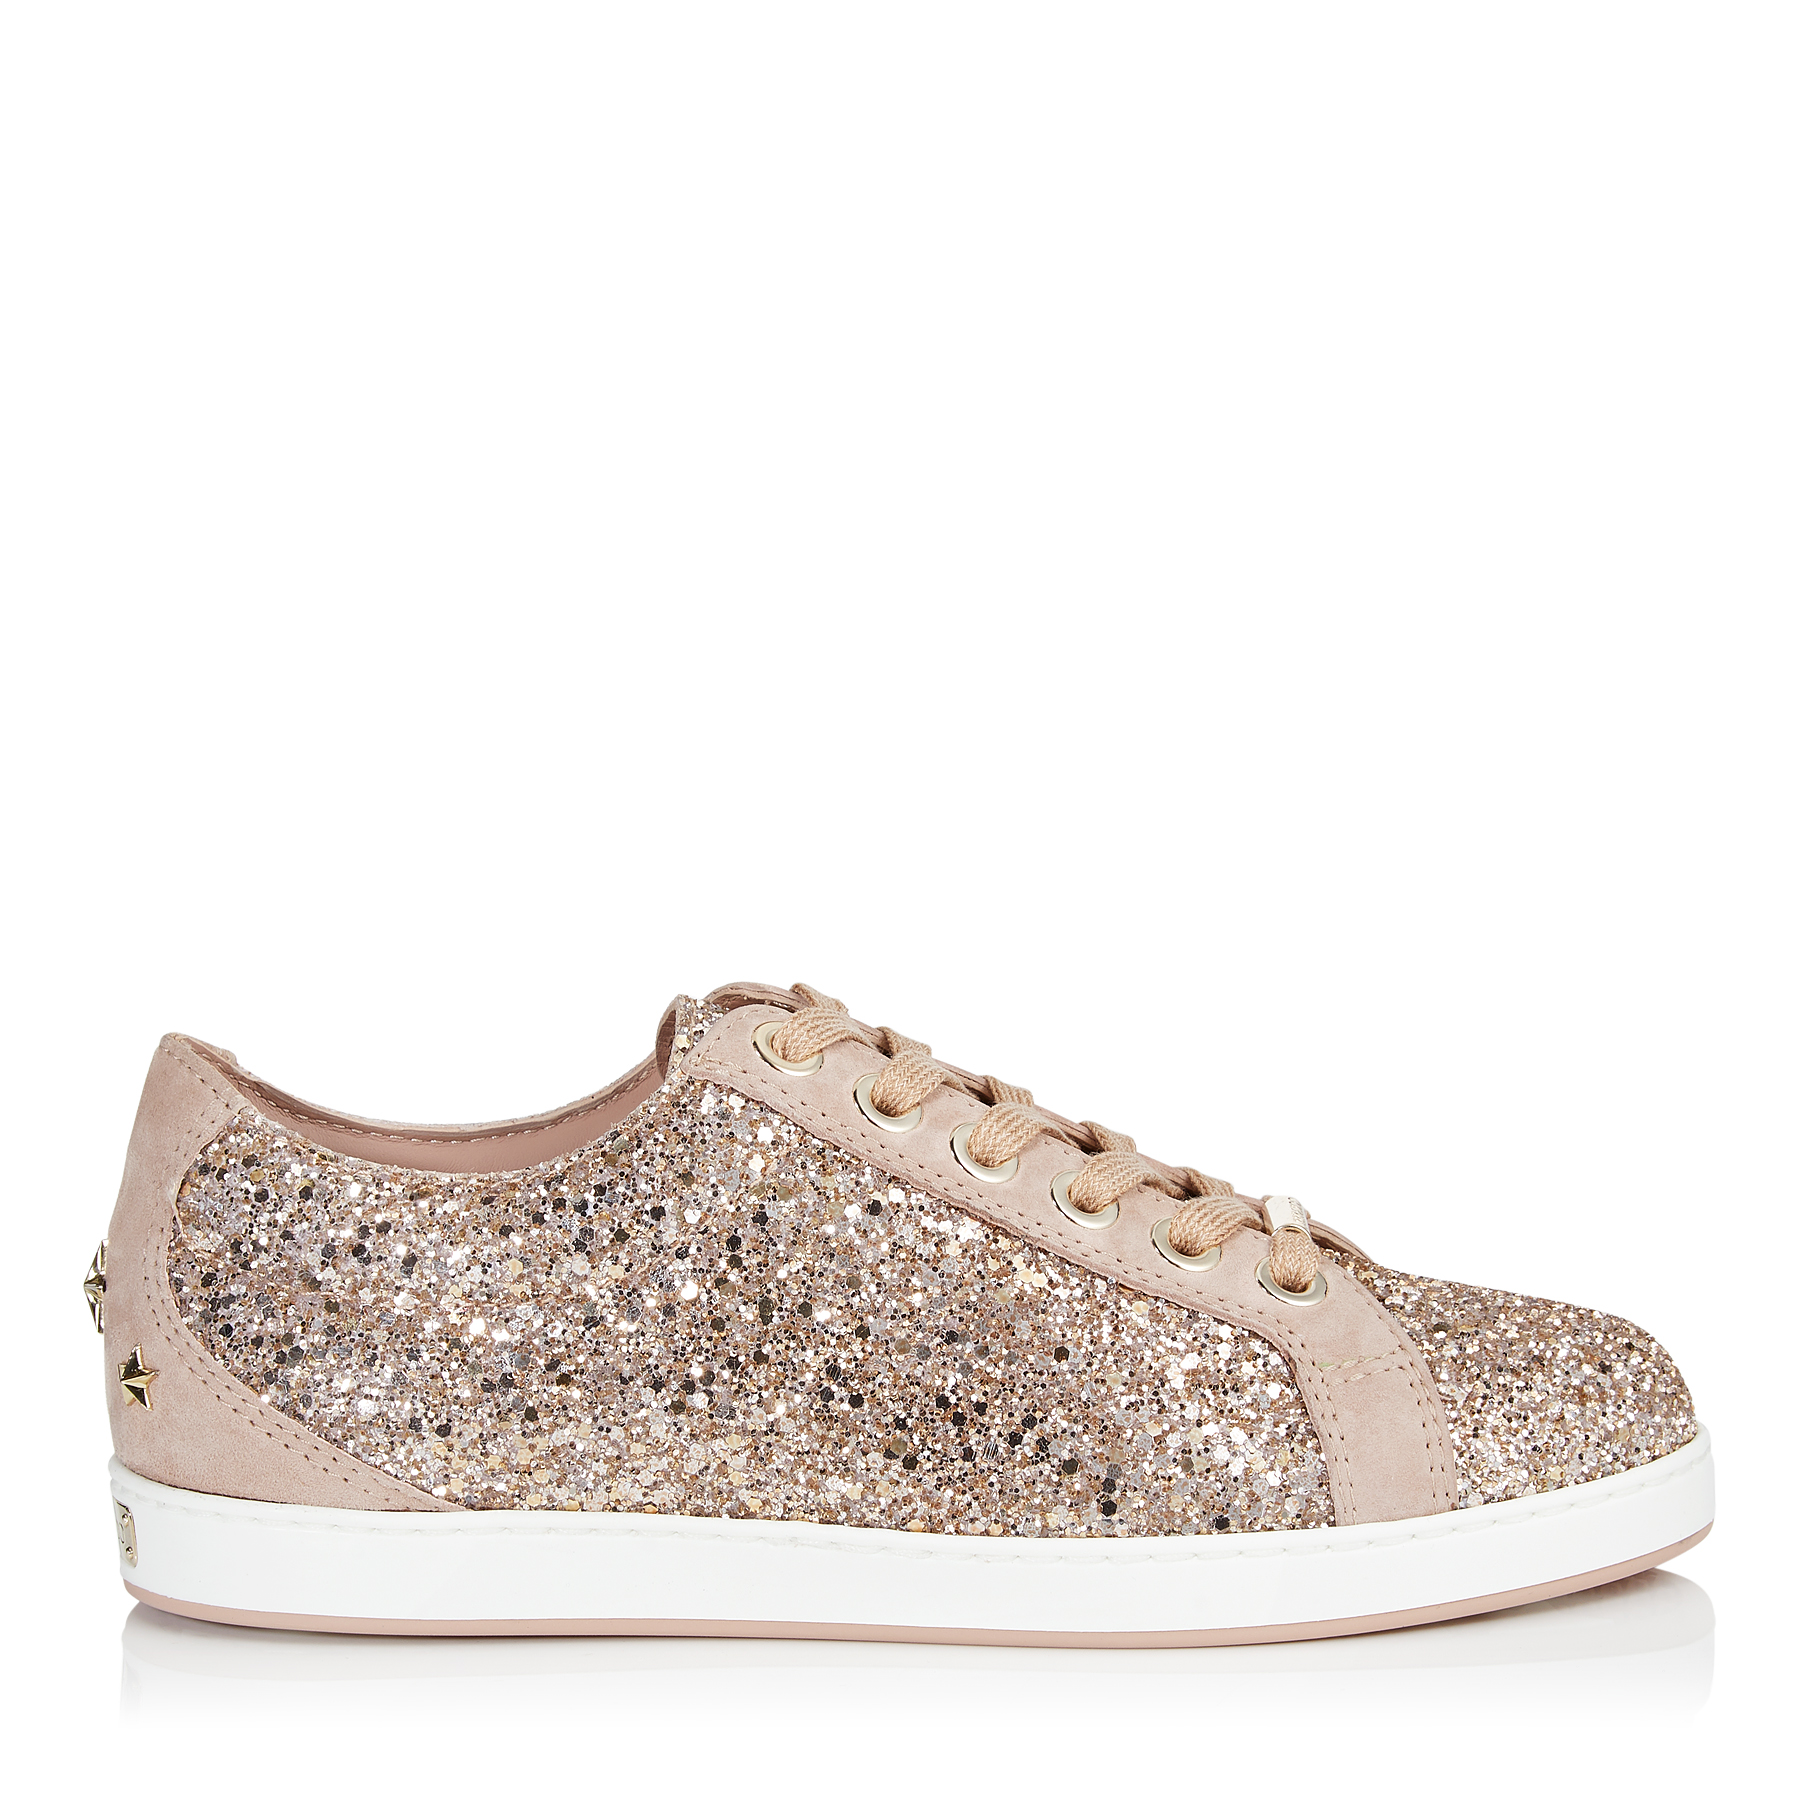 CASH/F Ballet Pink Shadow Coarse Glitter Fabric Low Top Trainers by Jimmy Choo